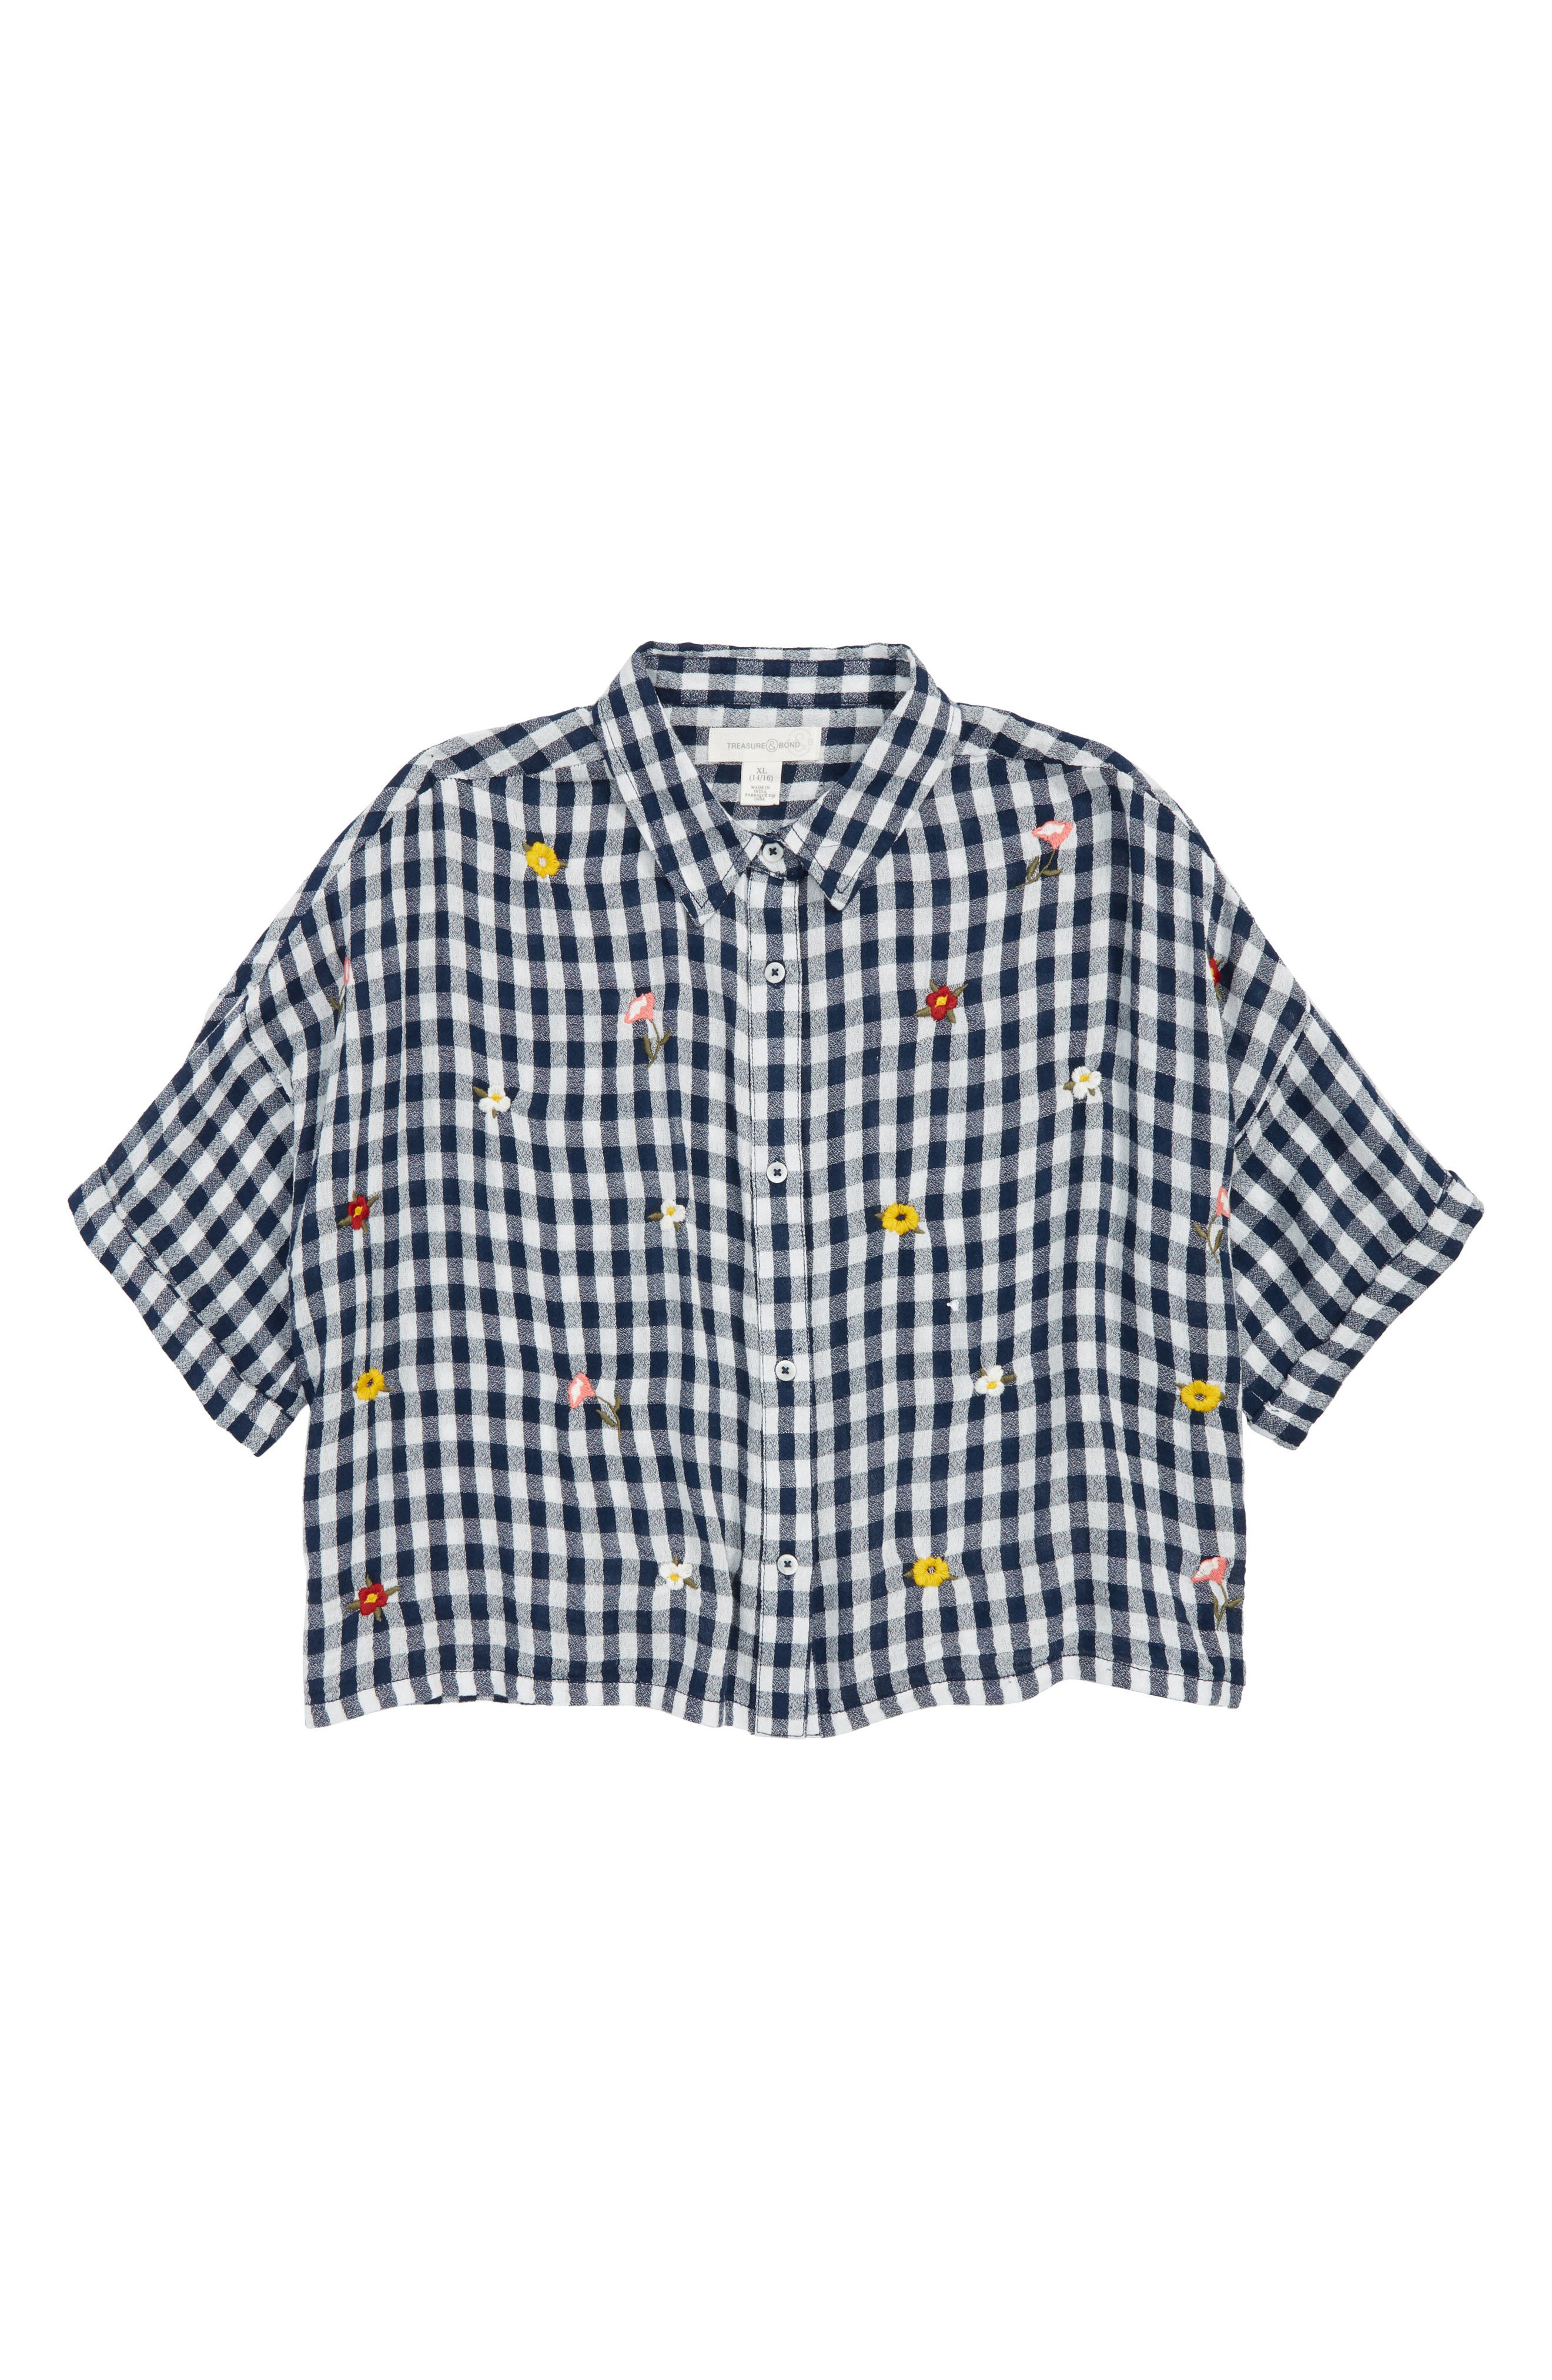 Gingham Embroidered Shirt,                             Main thumbnail 1, color,                             Navy Armada- White Gingham